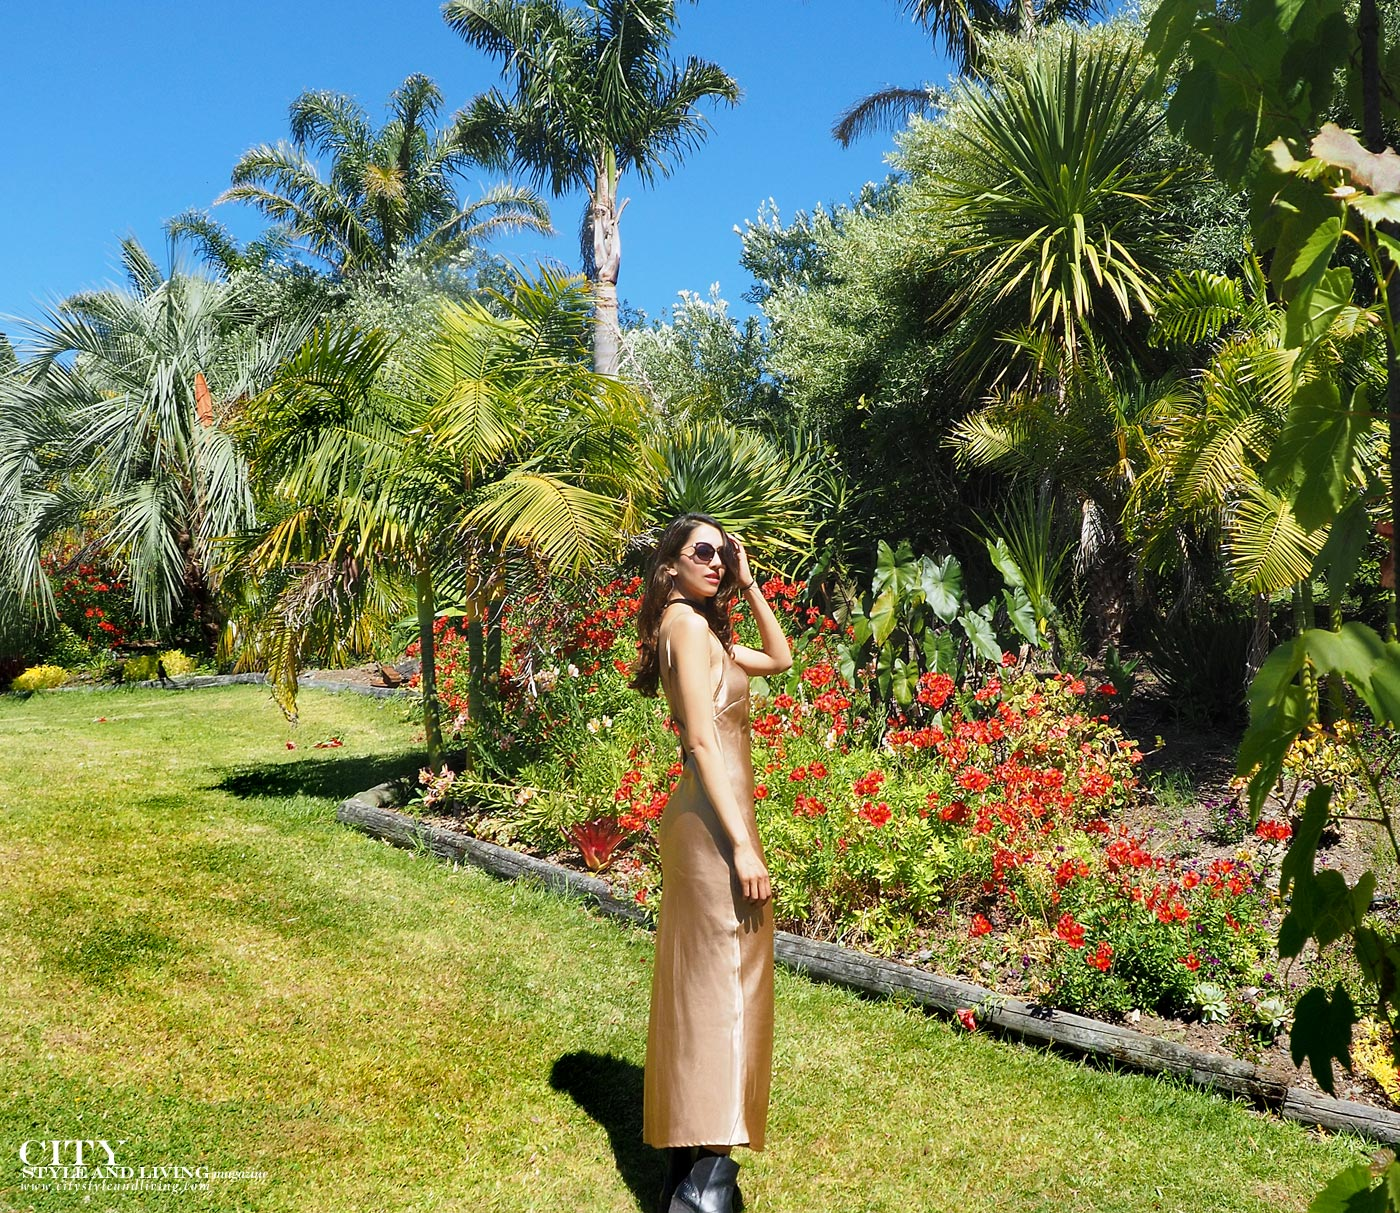 City style and living magazine Editors Notebook style fashion blogger Shivana M Mercury Bay Winery Coromandel New Zealand Gold dress in garden